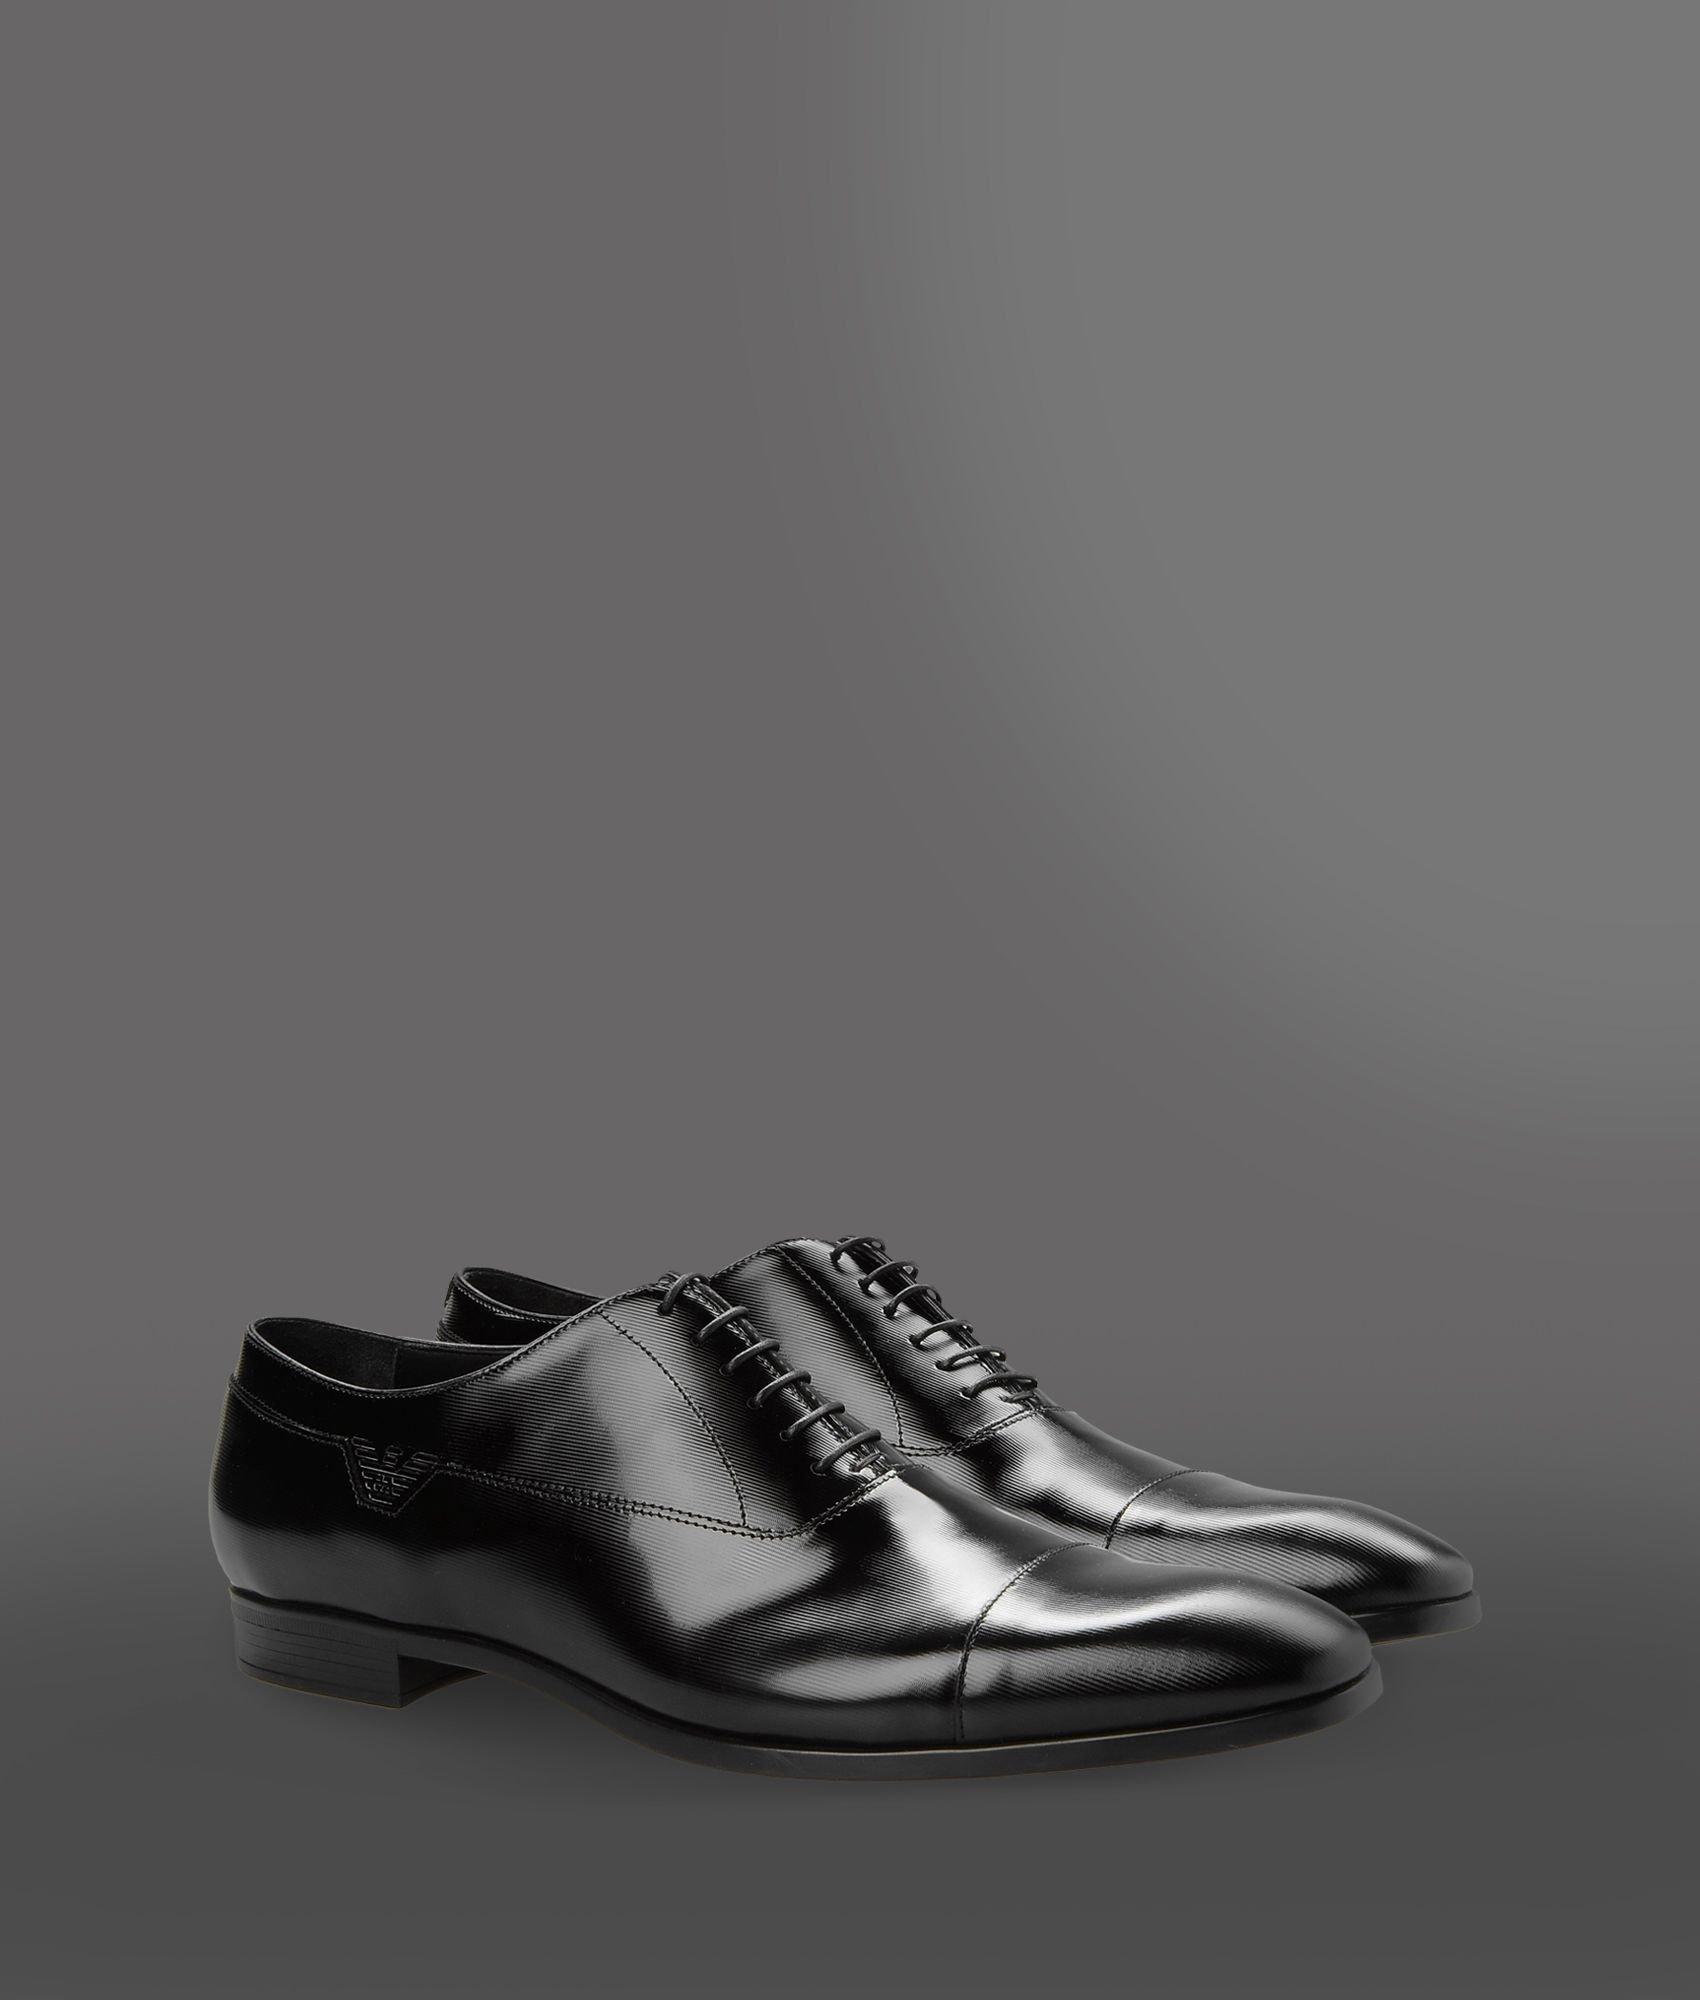 Lyst - Emporio armani Laceup Shoes in Black for Men